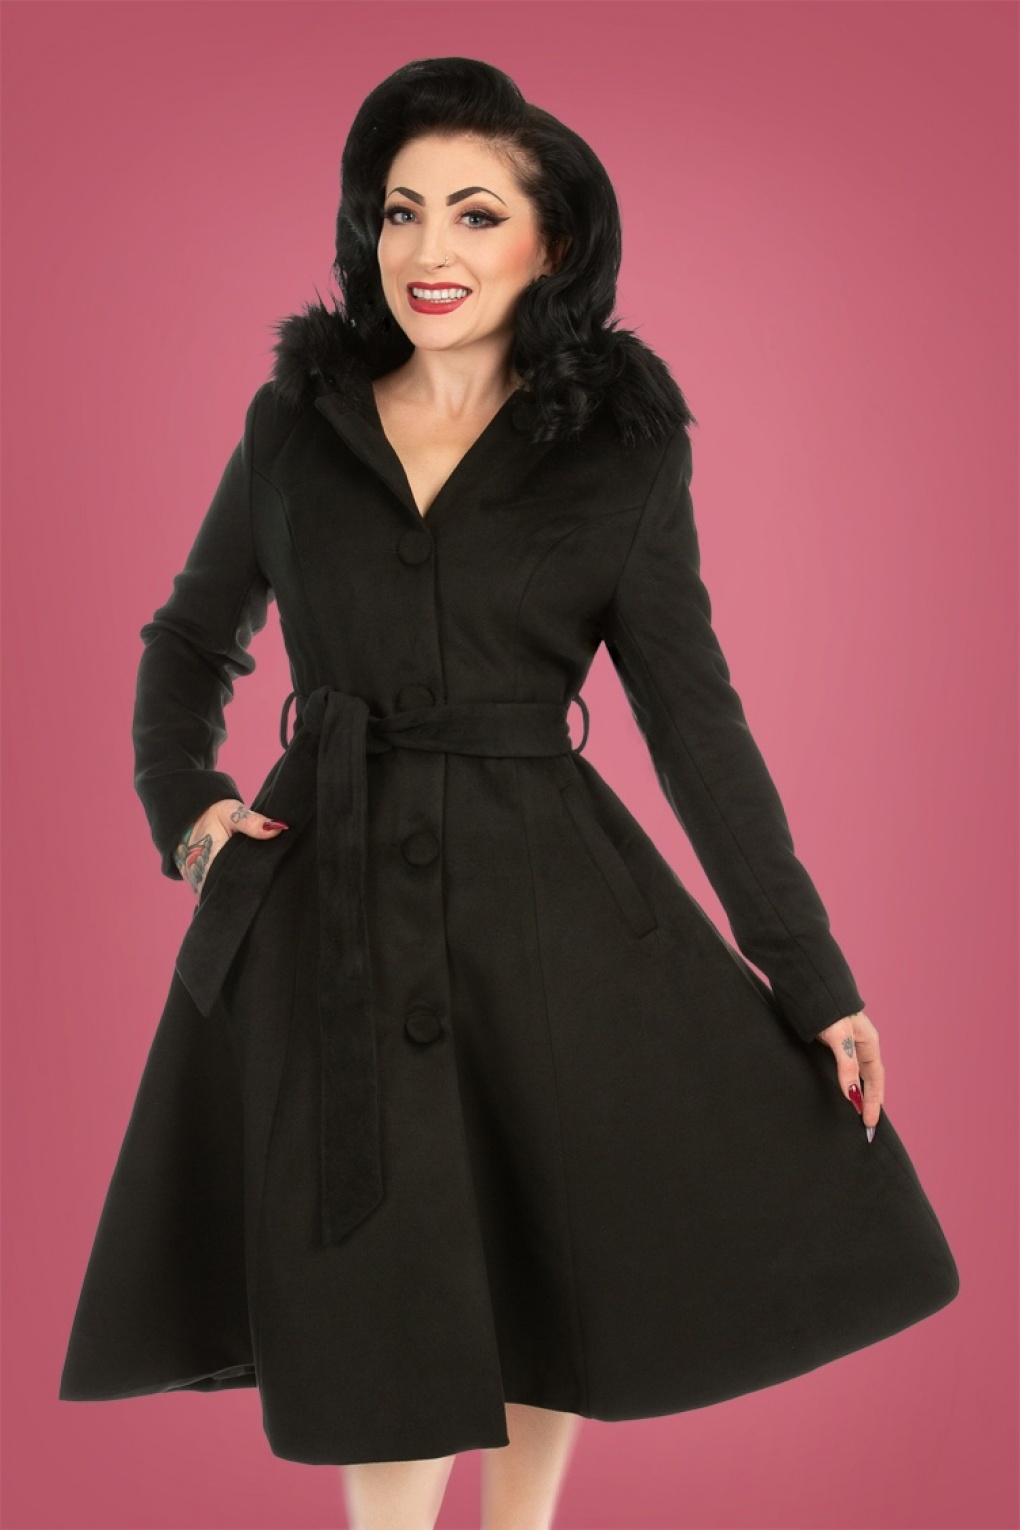 What Did Women Wear in the 1950s? 1950s Fashion Guide 50s Ella Swing Coat in Black £102.10 AT vintagedancer.com